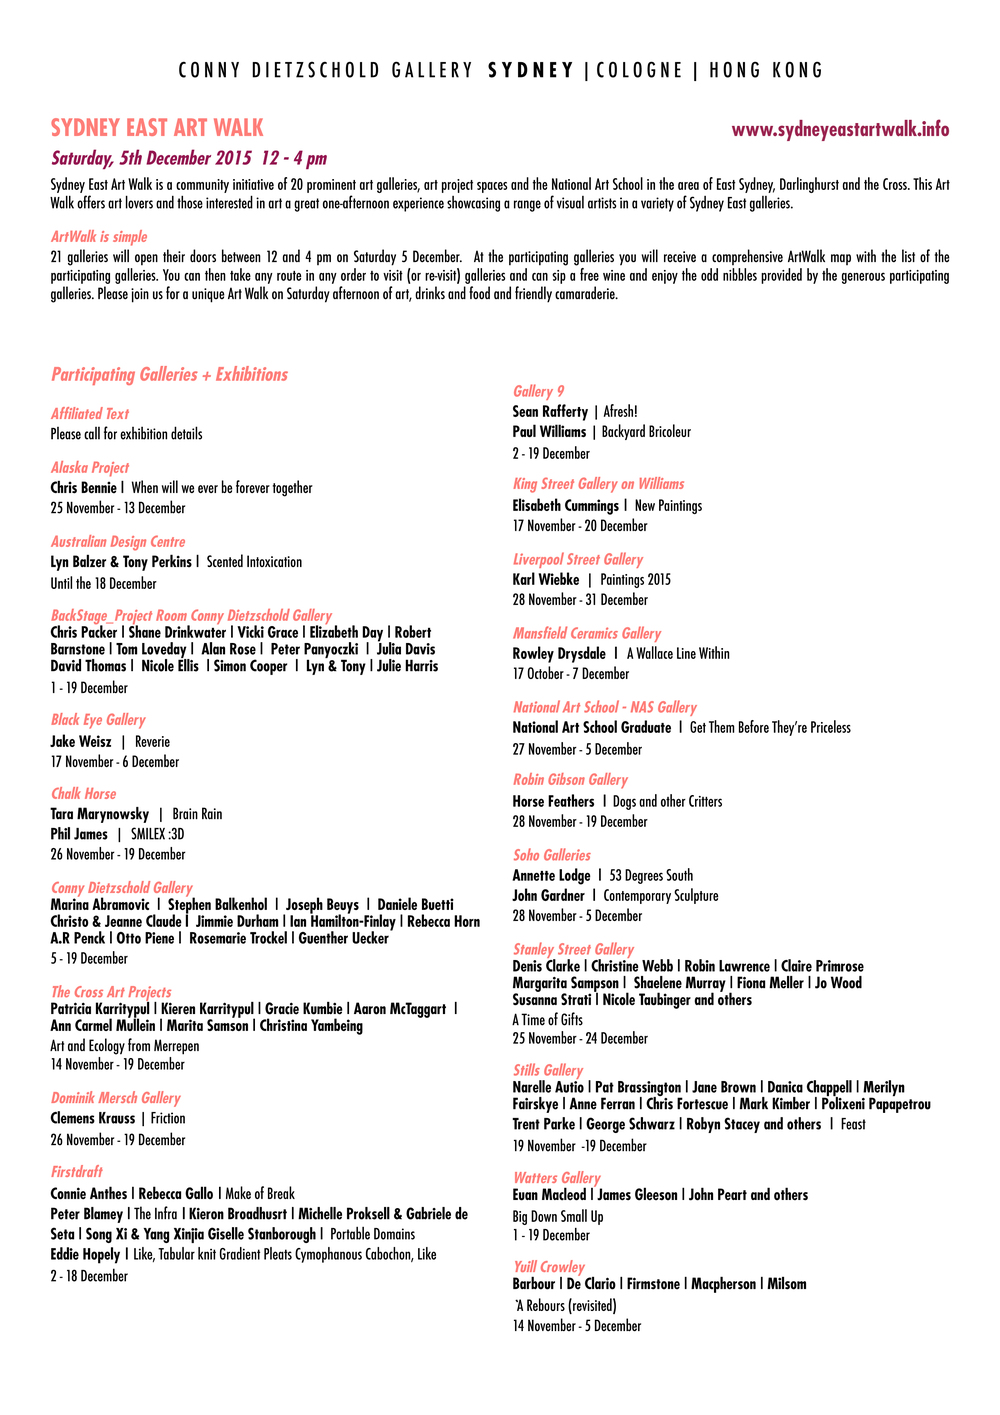 Click to enlarge the Art Walk Program